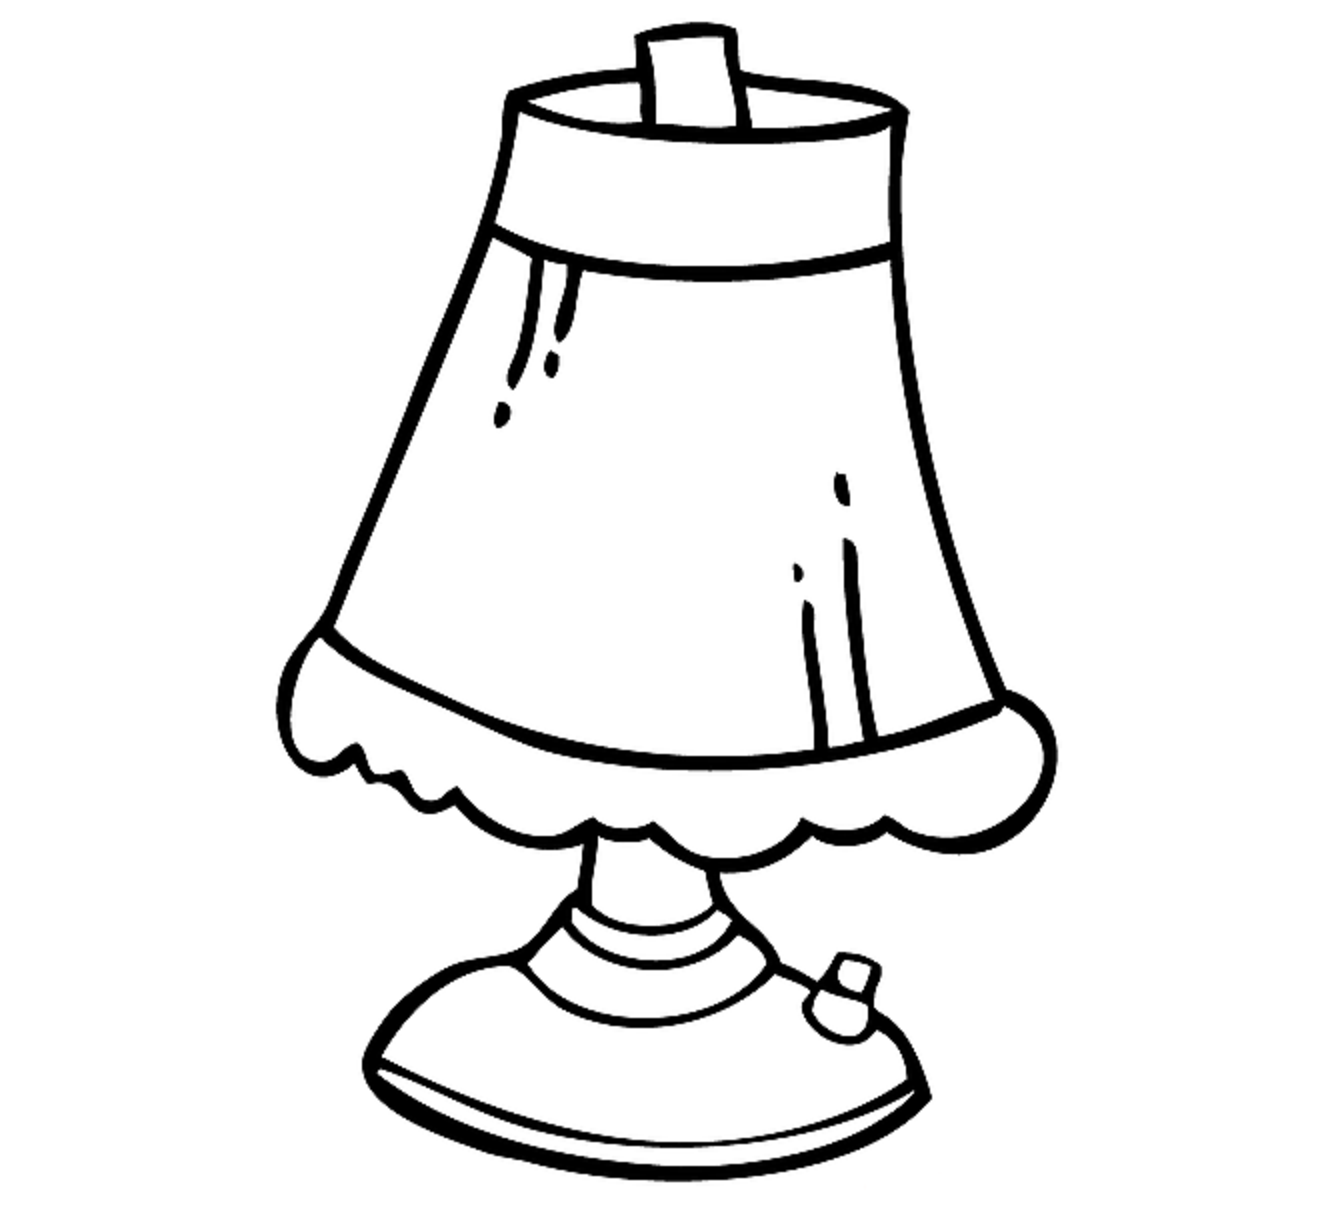 coloring pages roseart lampshades - photo#27